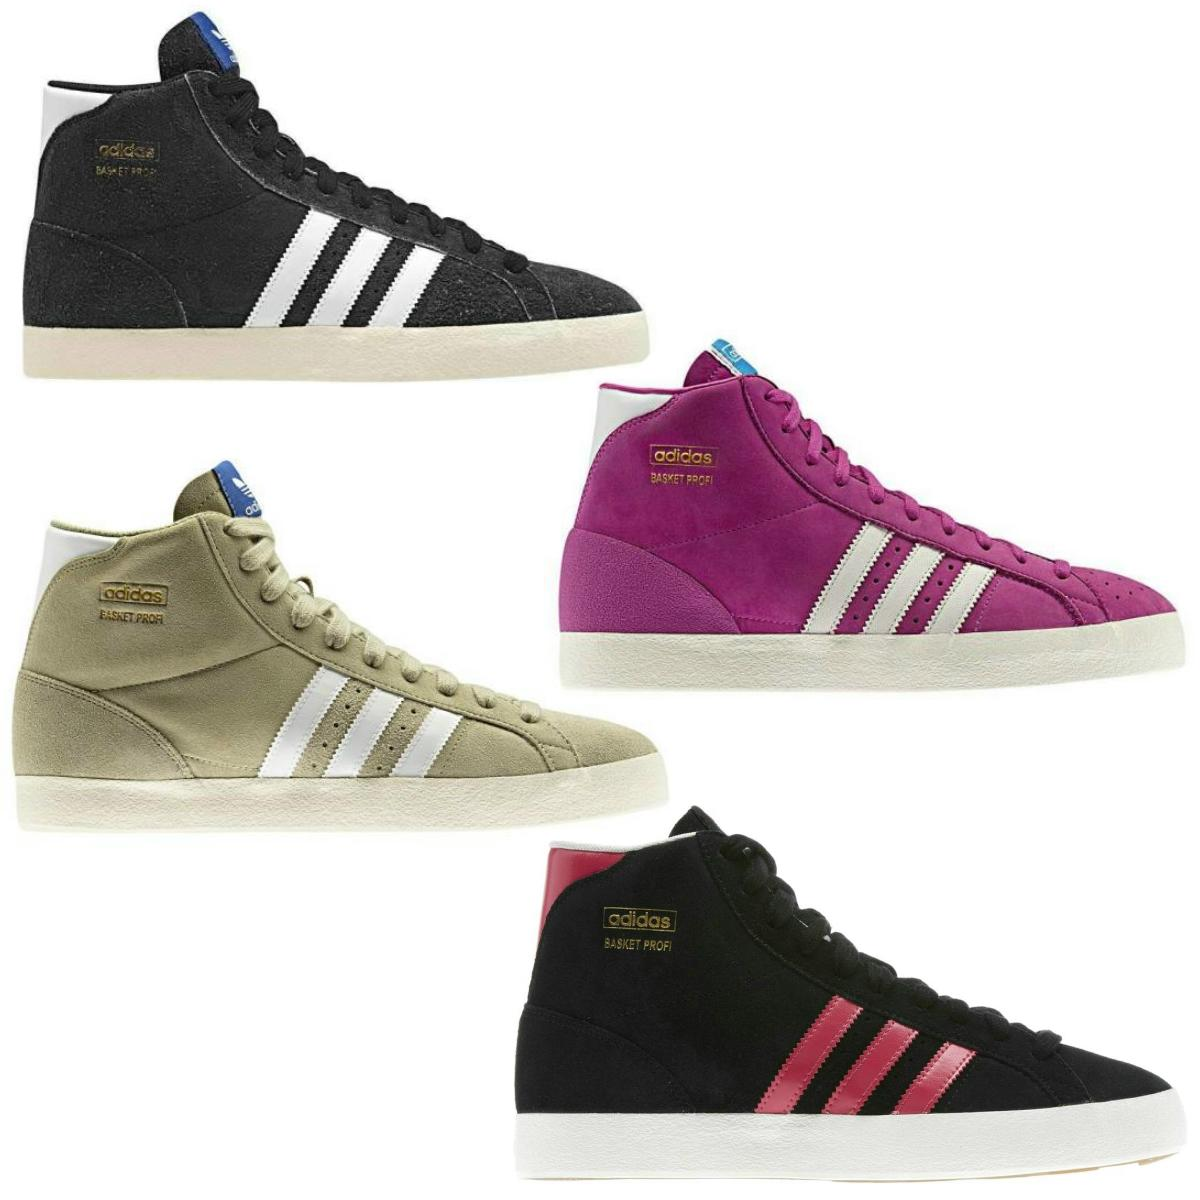 adidas originals basket profi schuhe high top sneaker damen herren. Black Bedroom Furniture Sets. Home Design Ideas